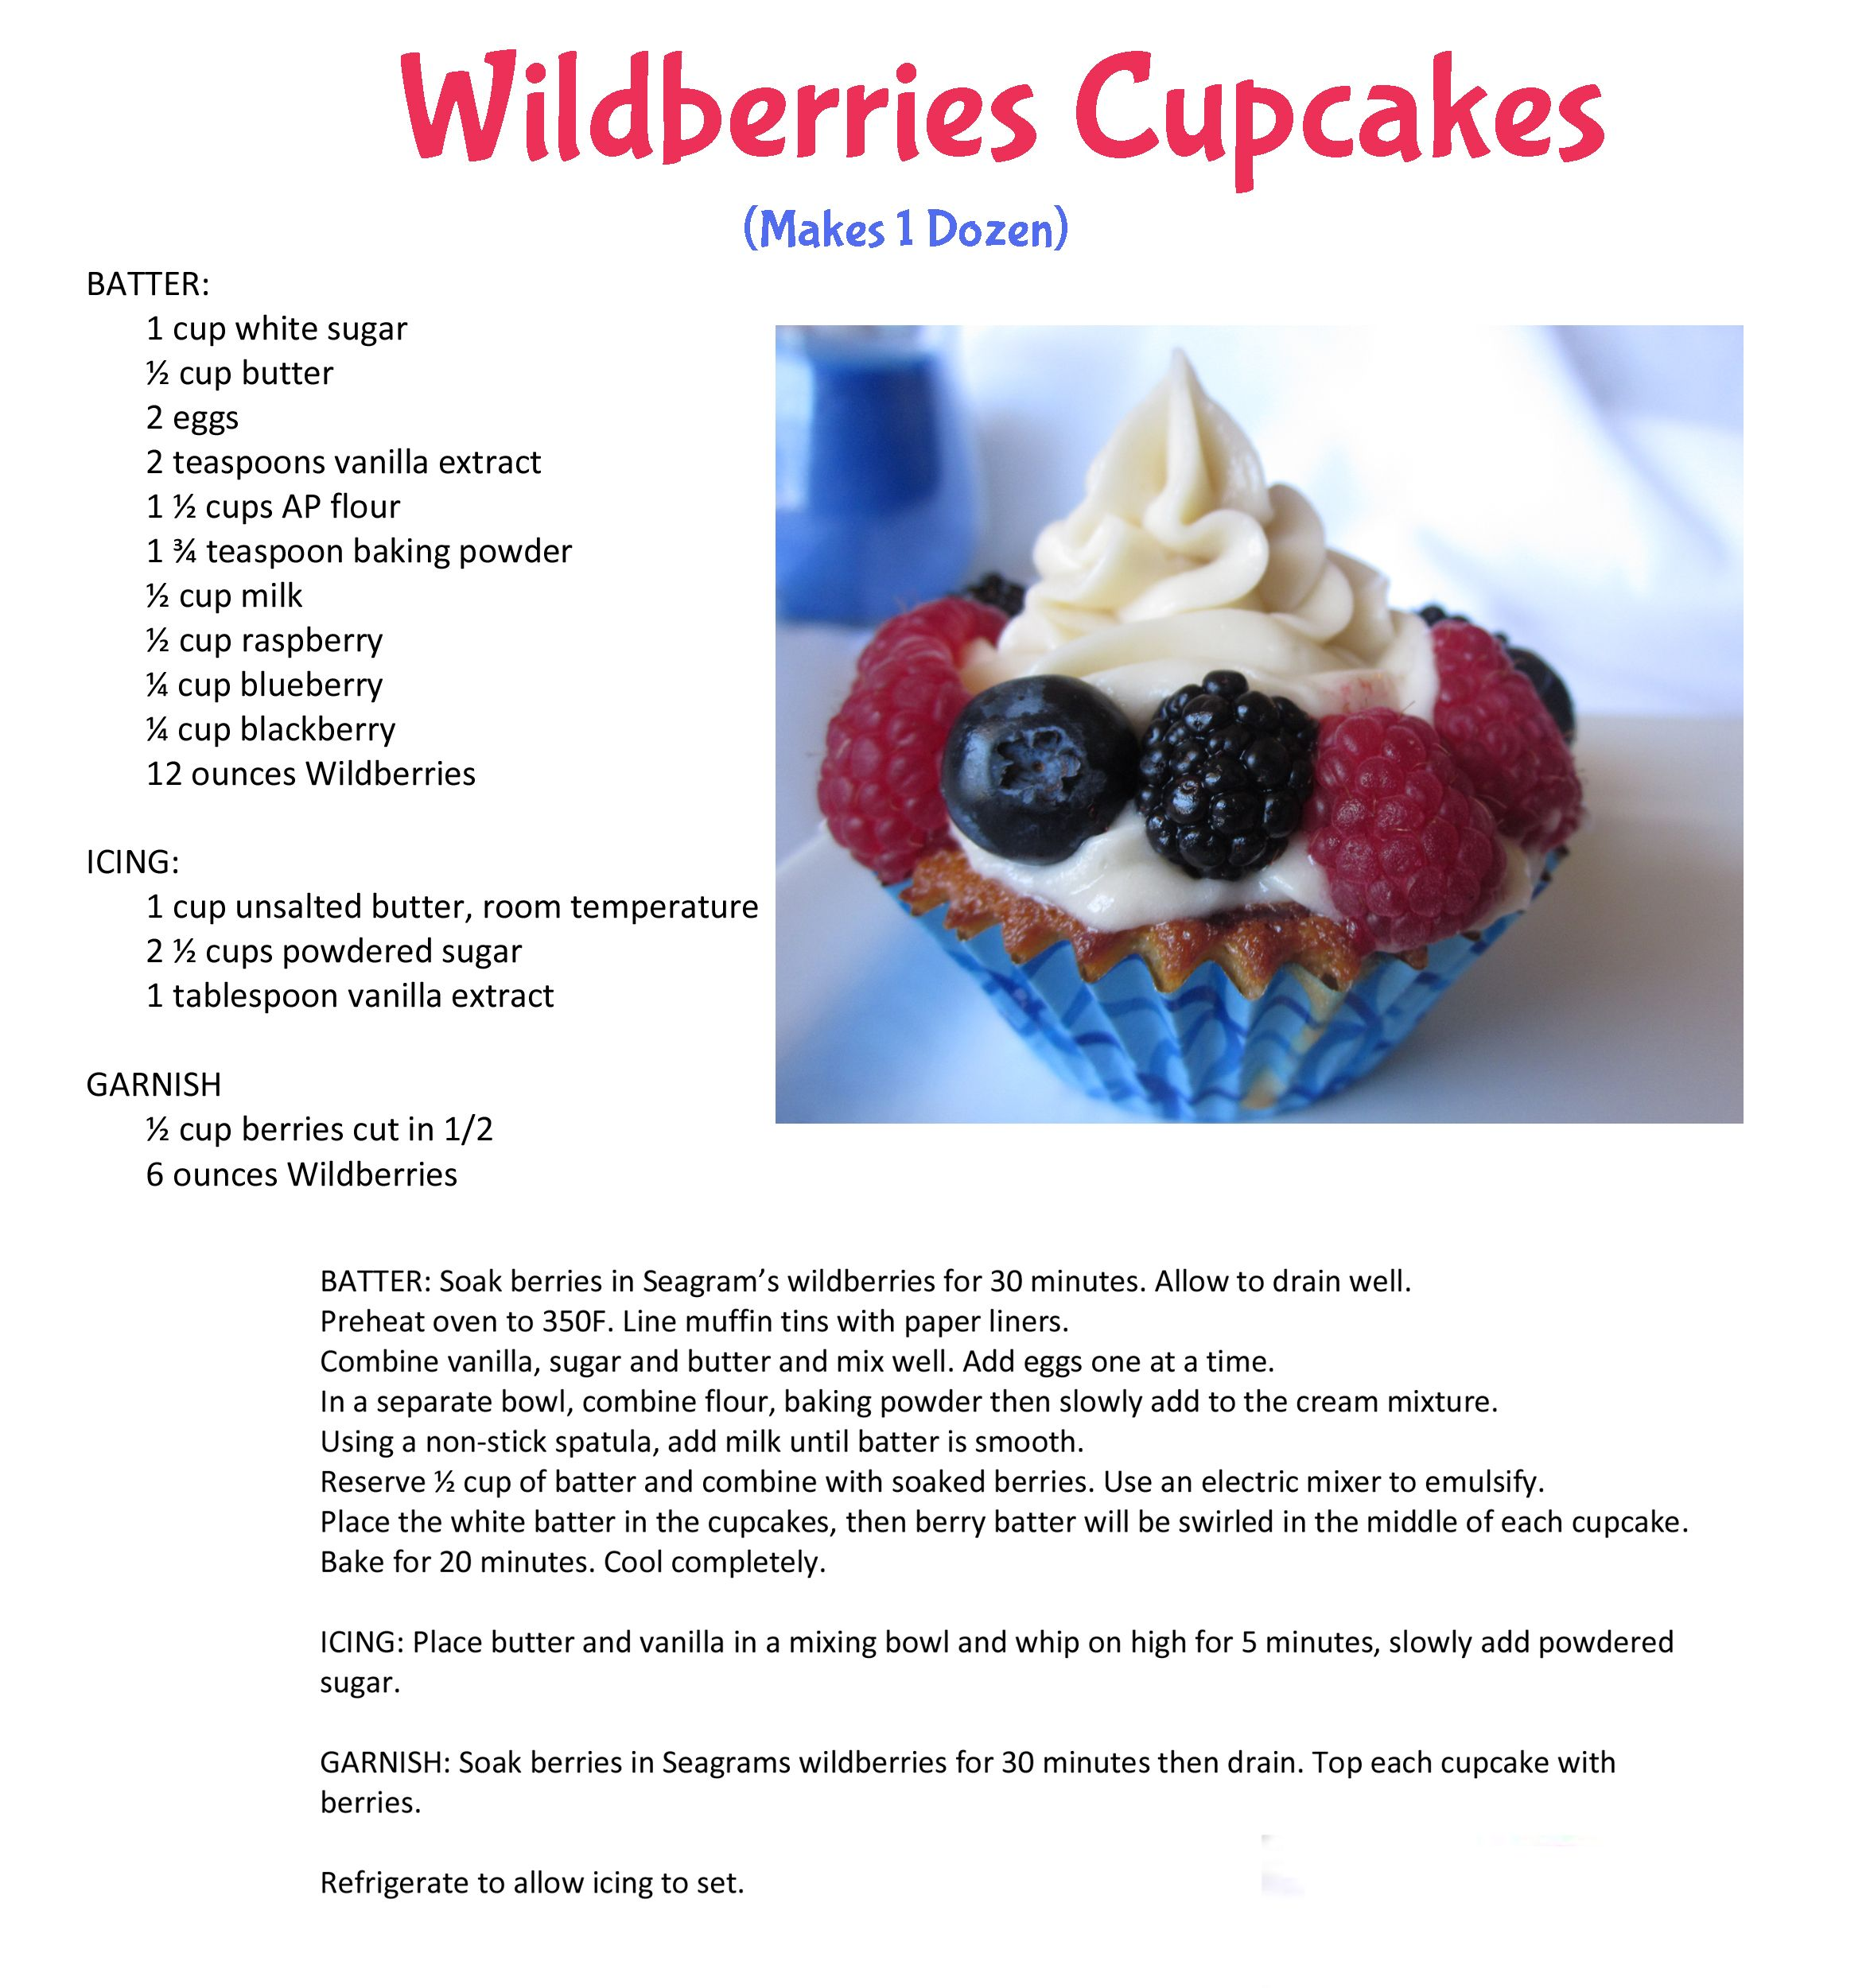 Cupcakes made with Seagram's Escapes Wild Berries!